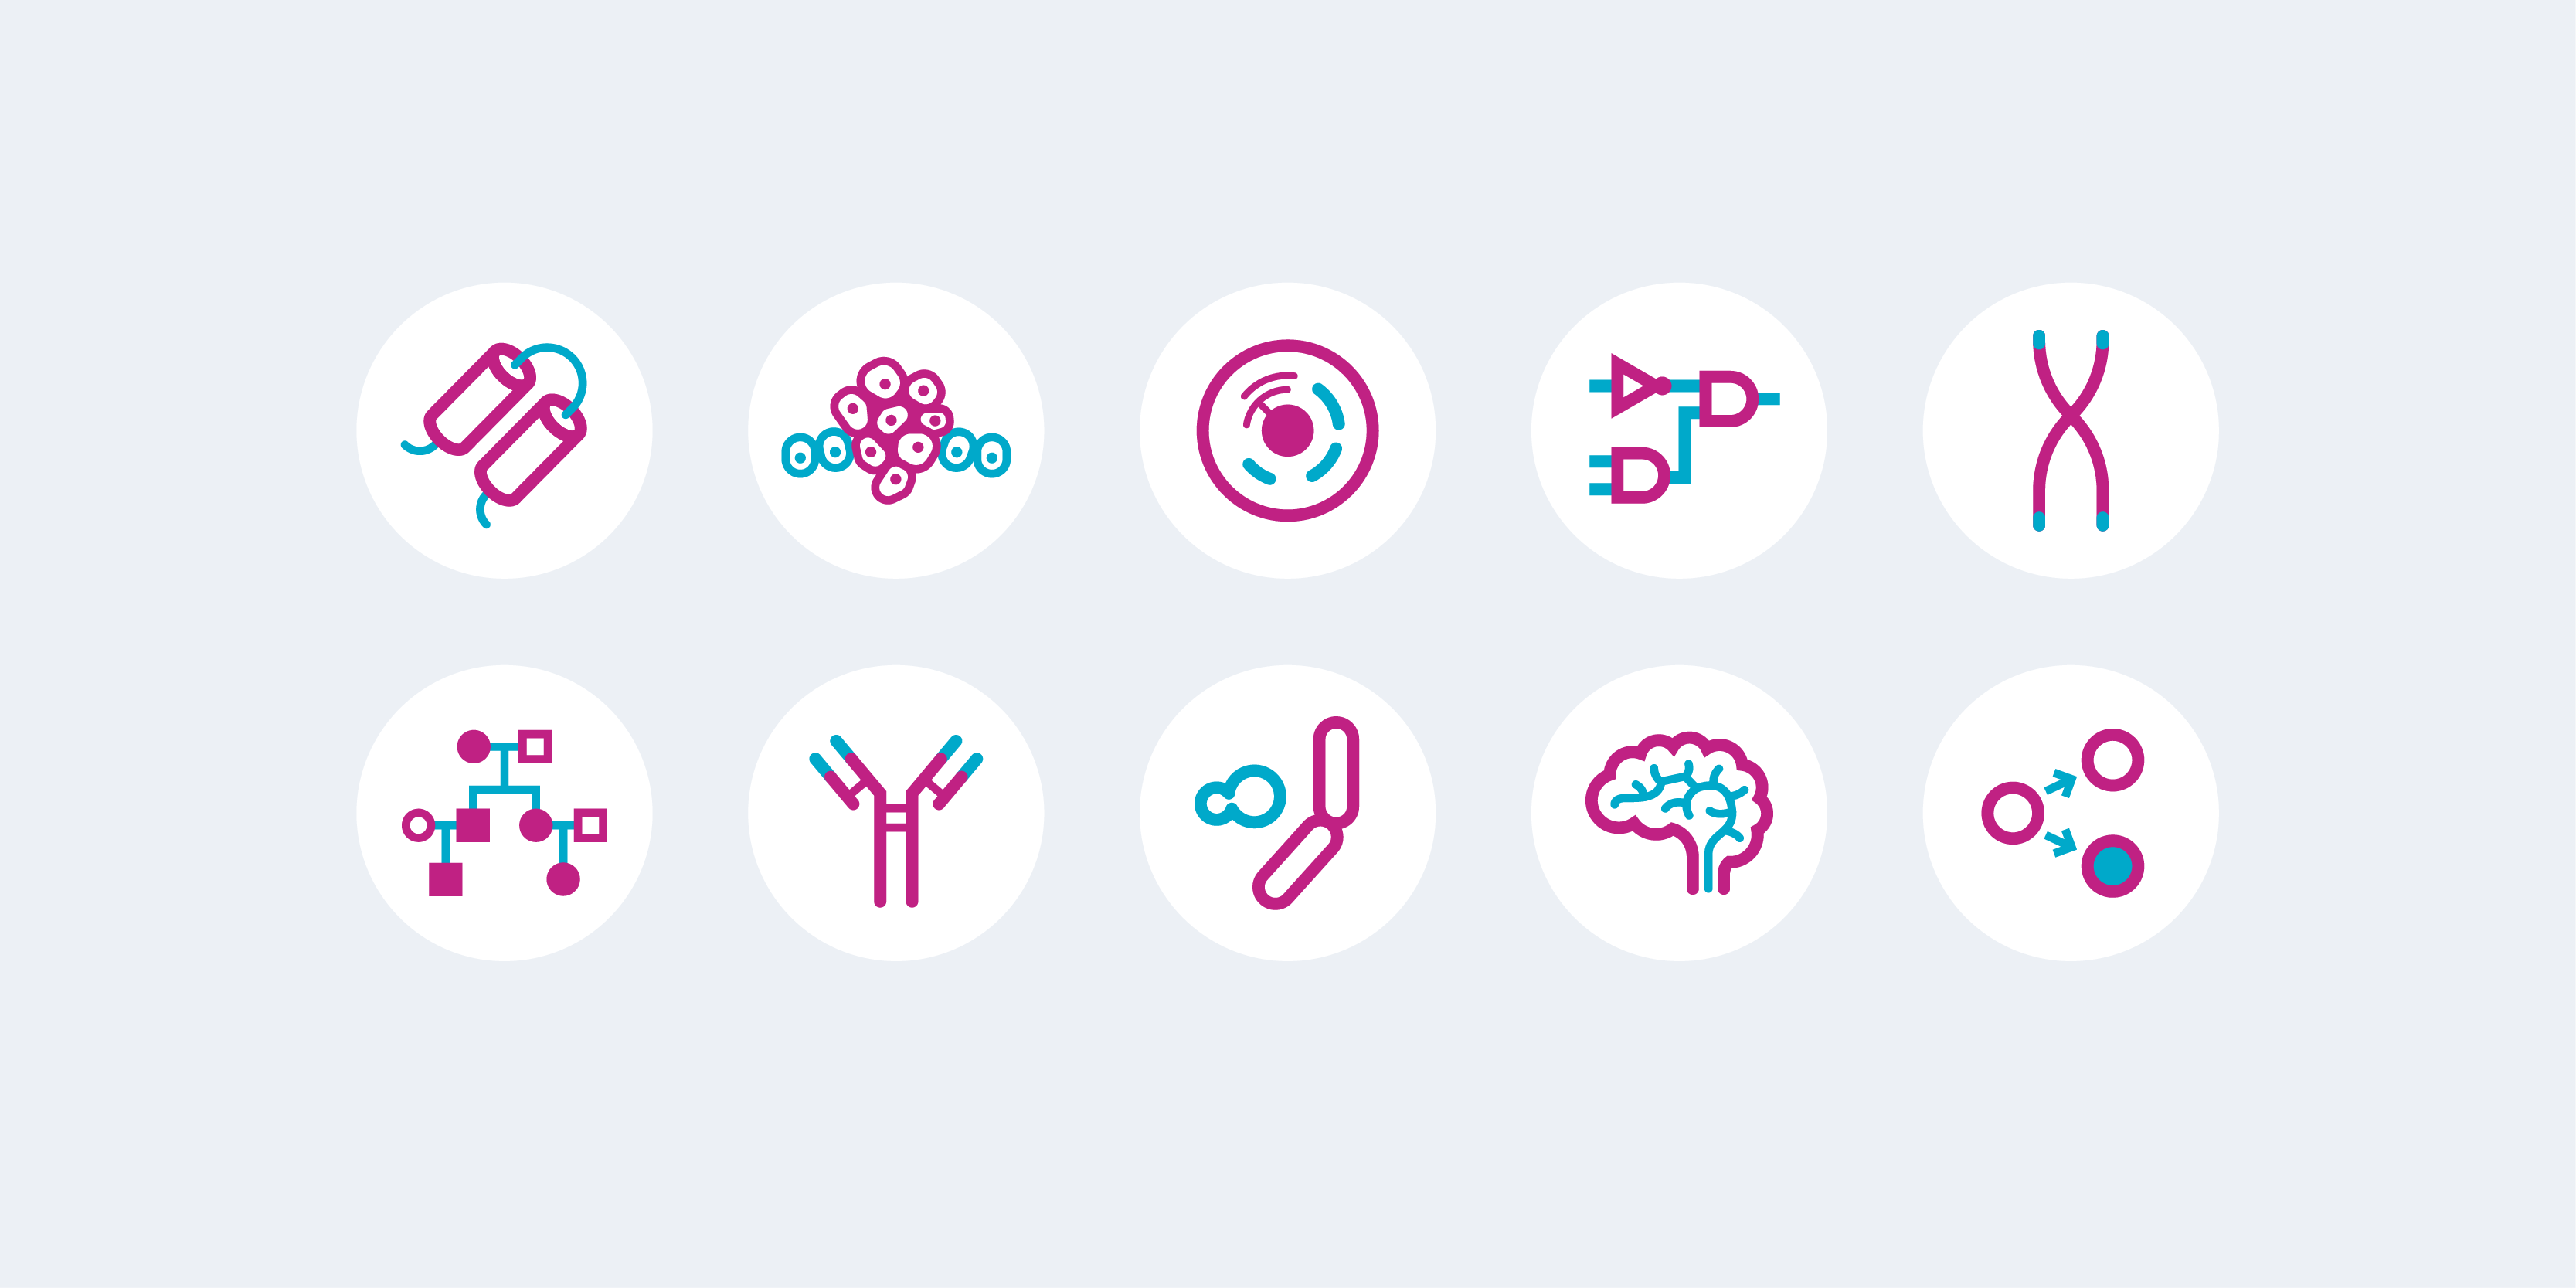 Biology research icons